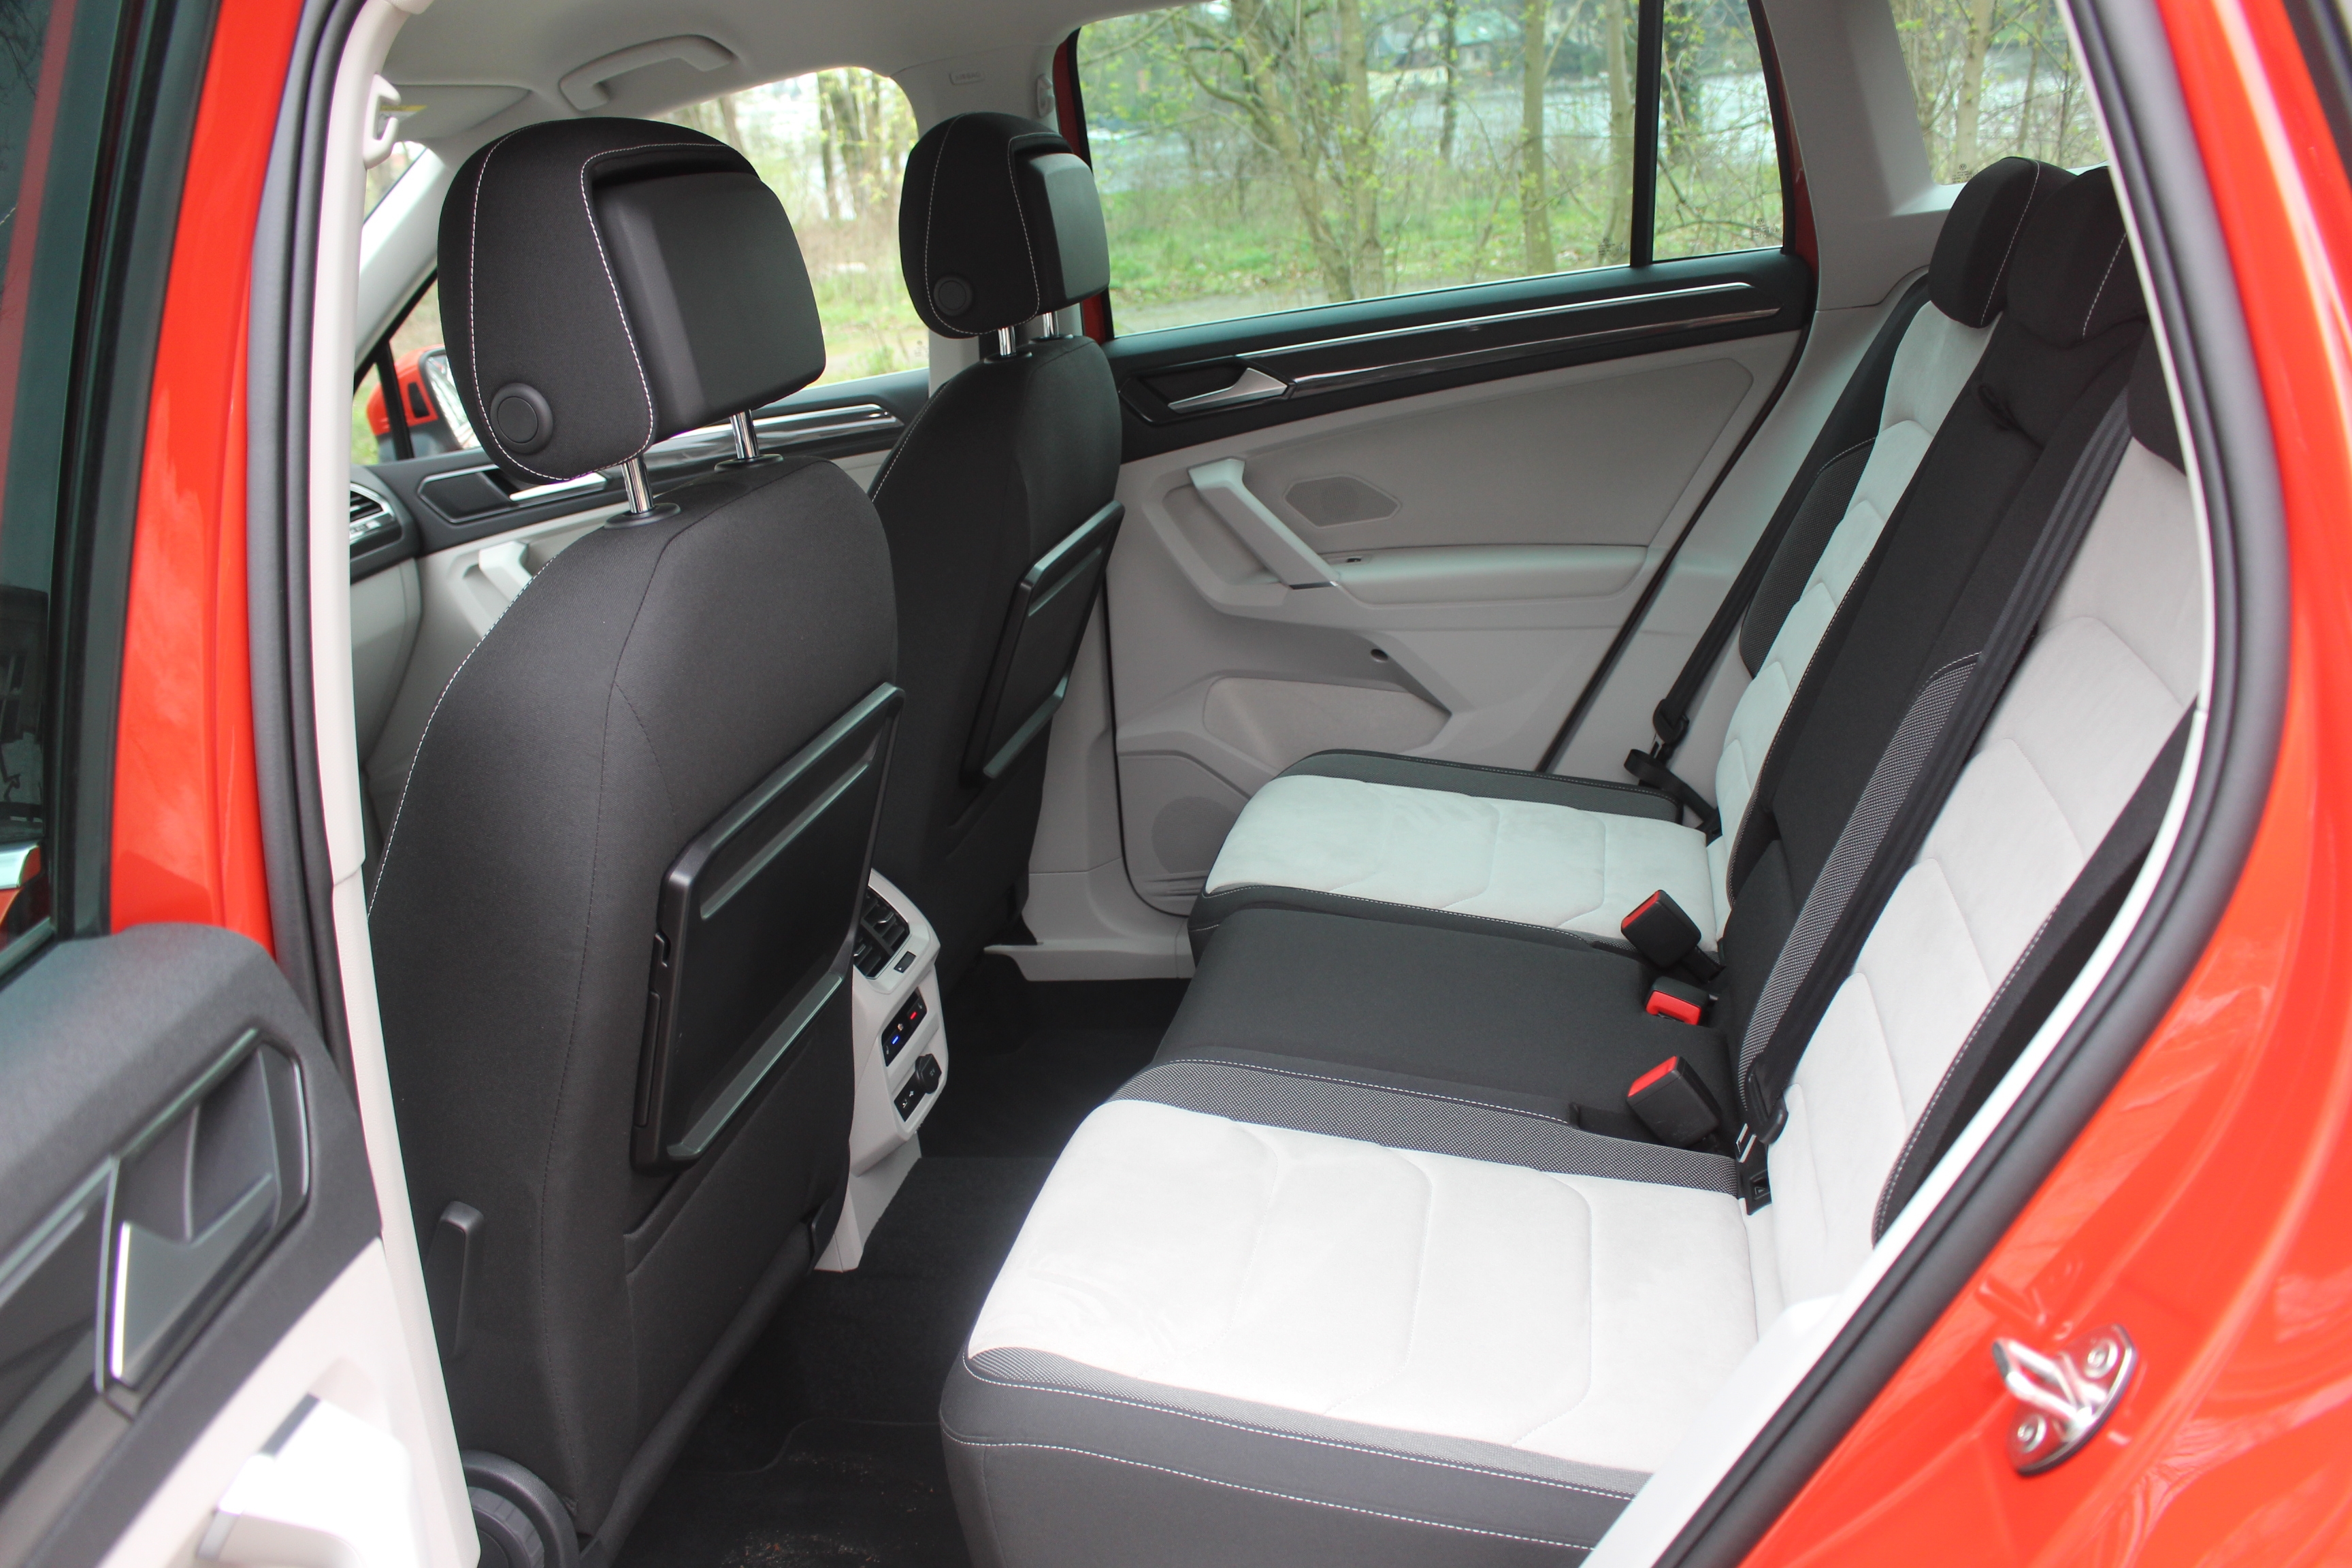 essai vid o volkswagen tiguan 2 le r veil de la force. Black Bedroom Furniture Sets. Home Design Ideas